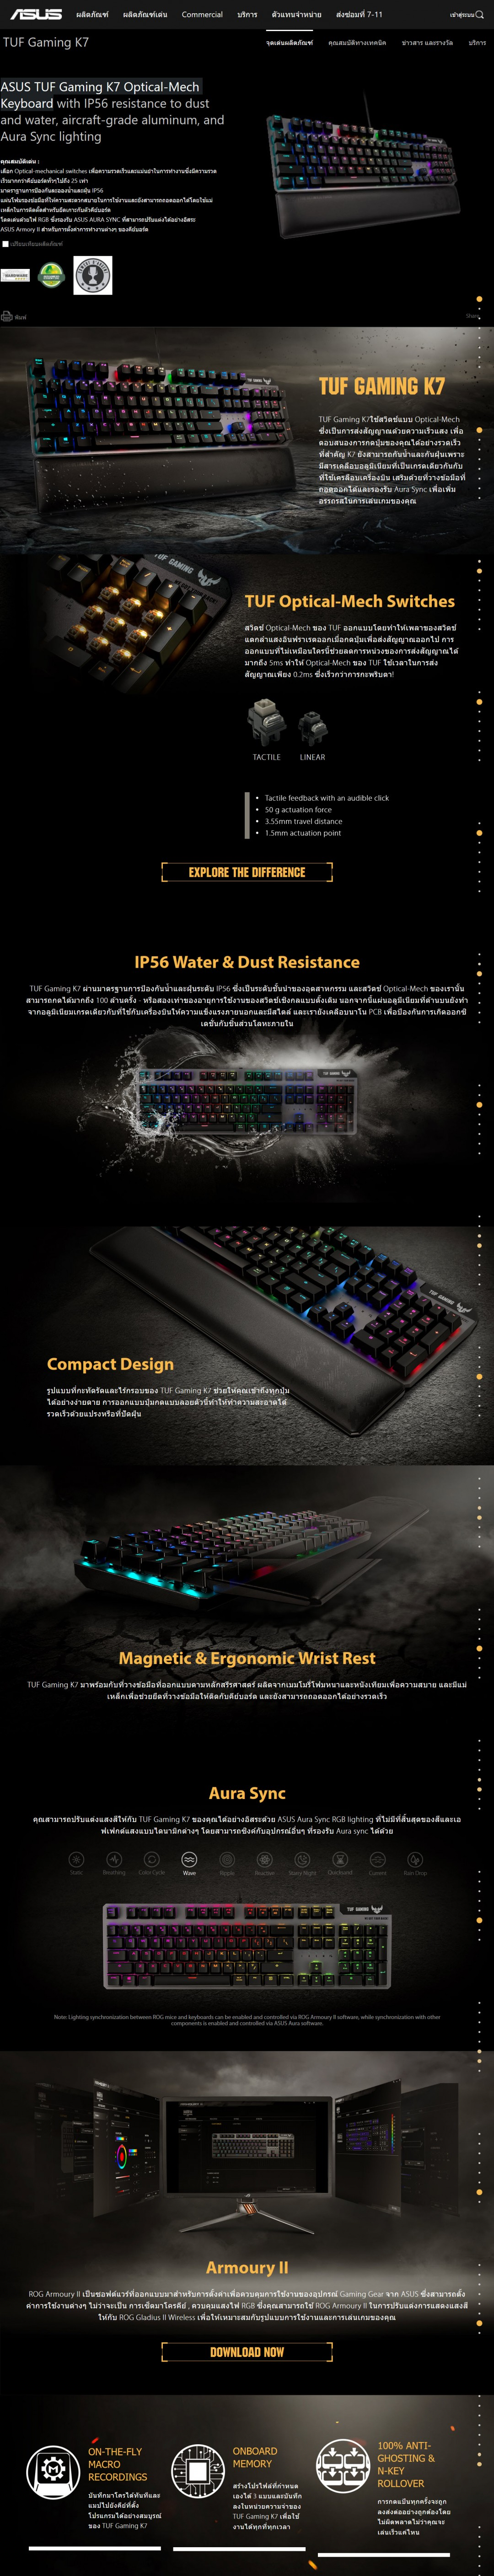 2019 04 18 22 38 38 ASUS TUF Gaming K7 Optical Mech Keyboard Review